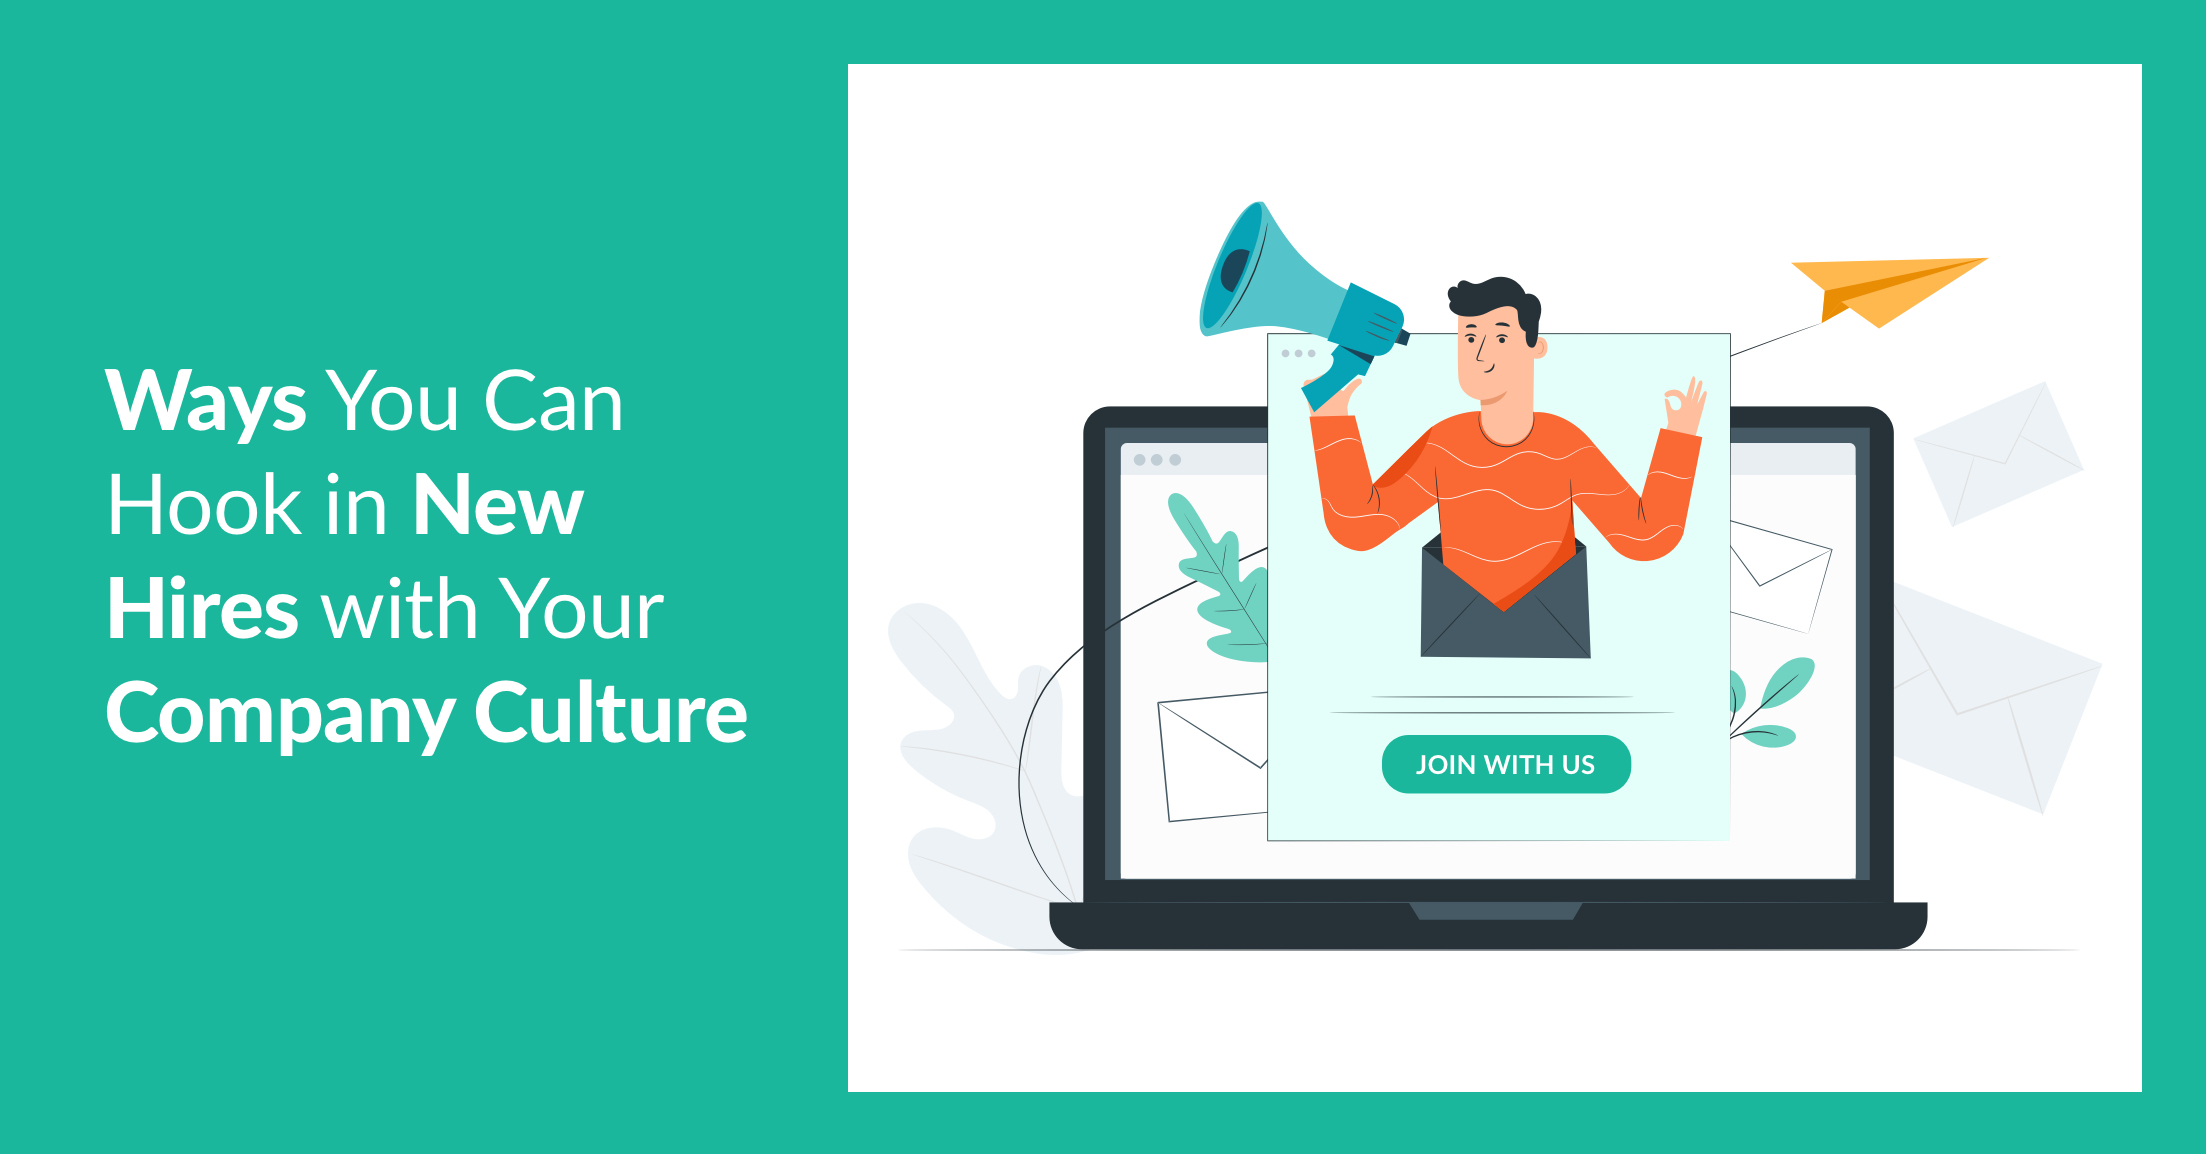 Ways You Can Hook in New Hires with Your Company Culture